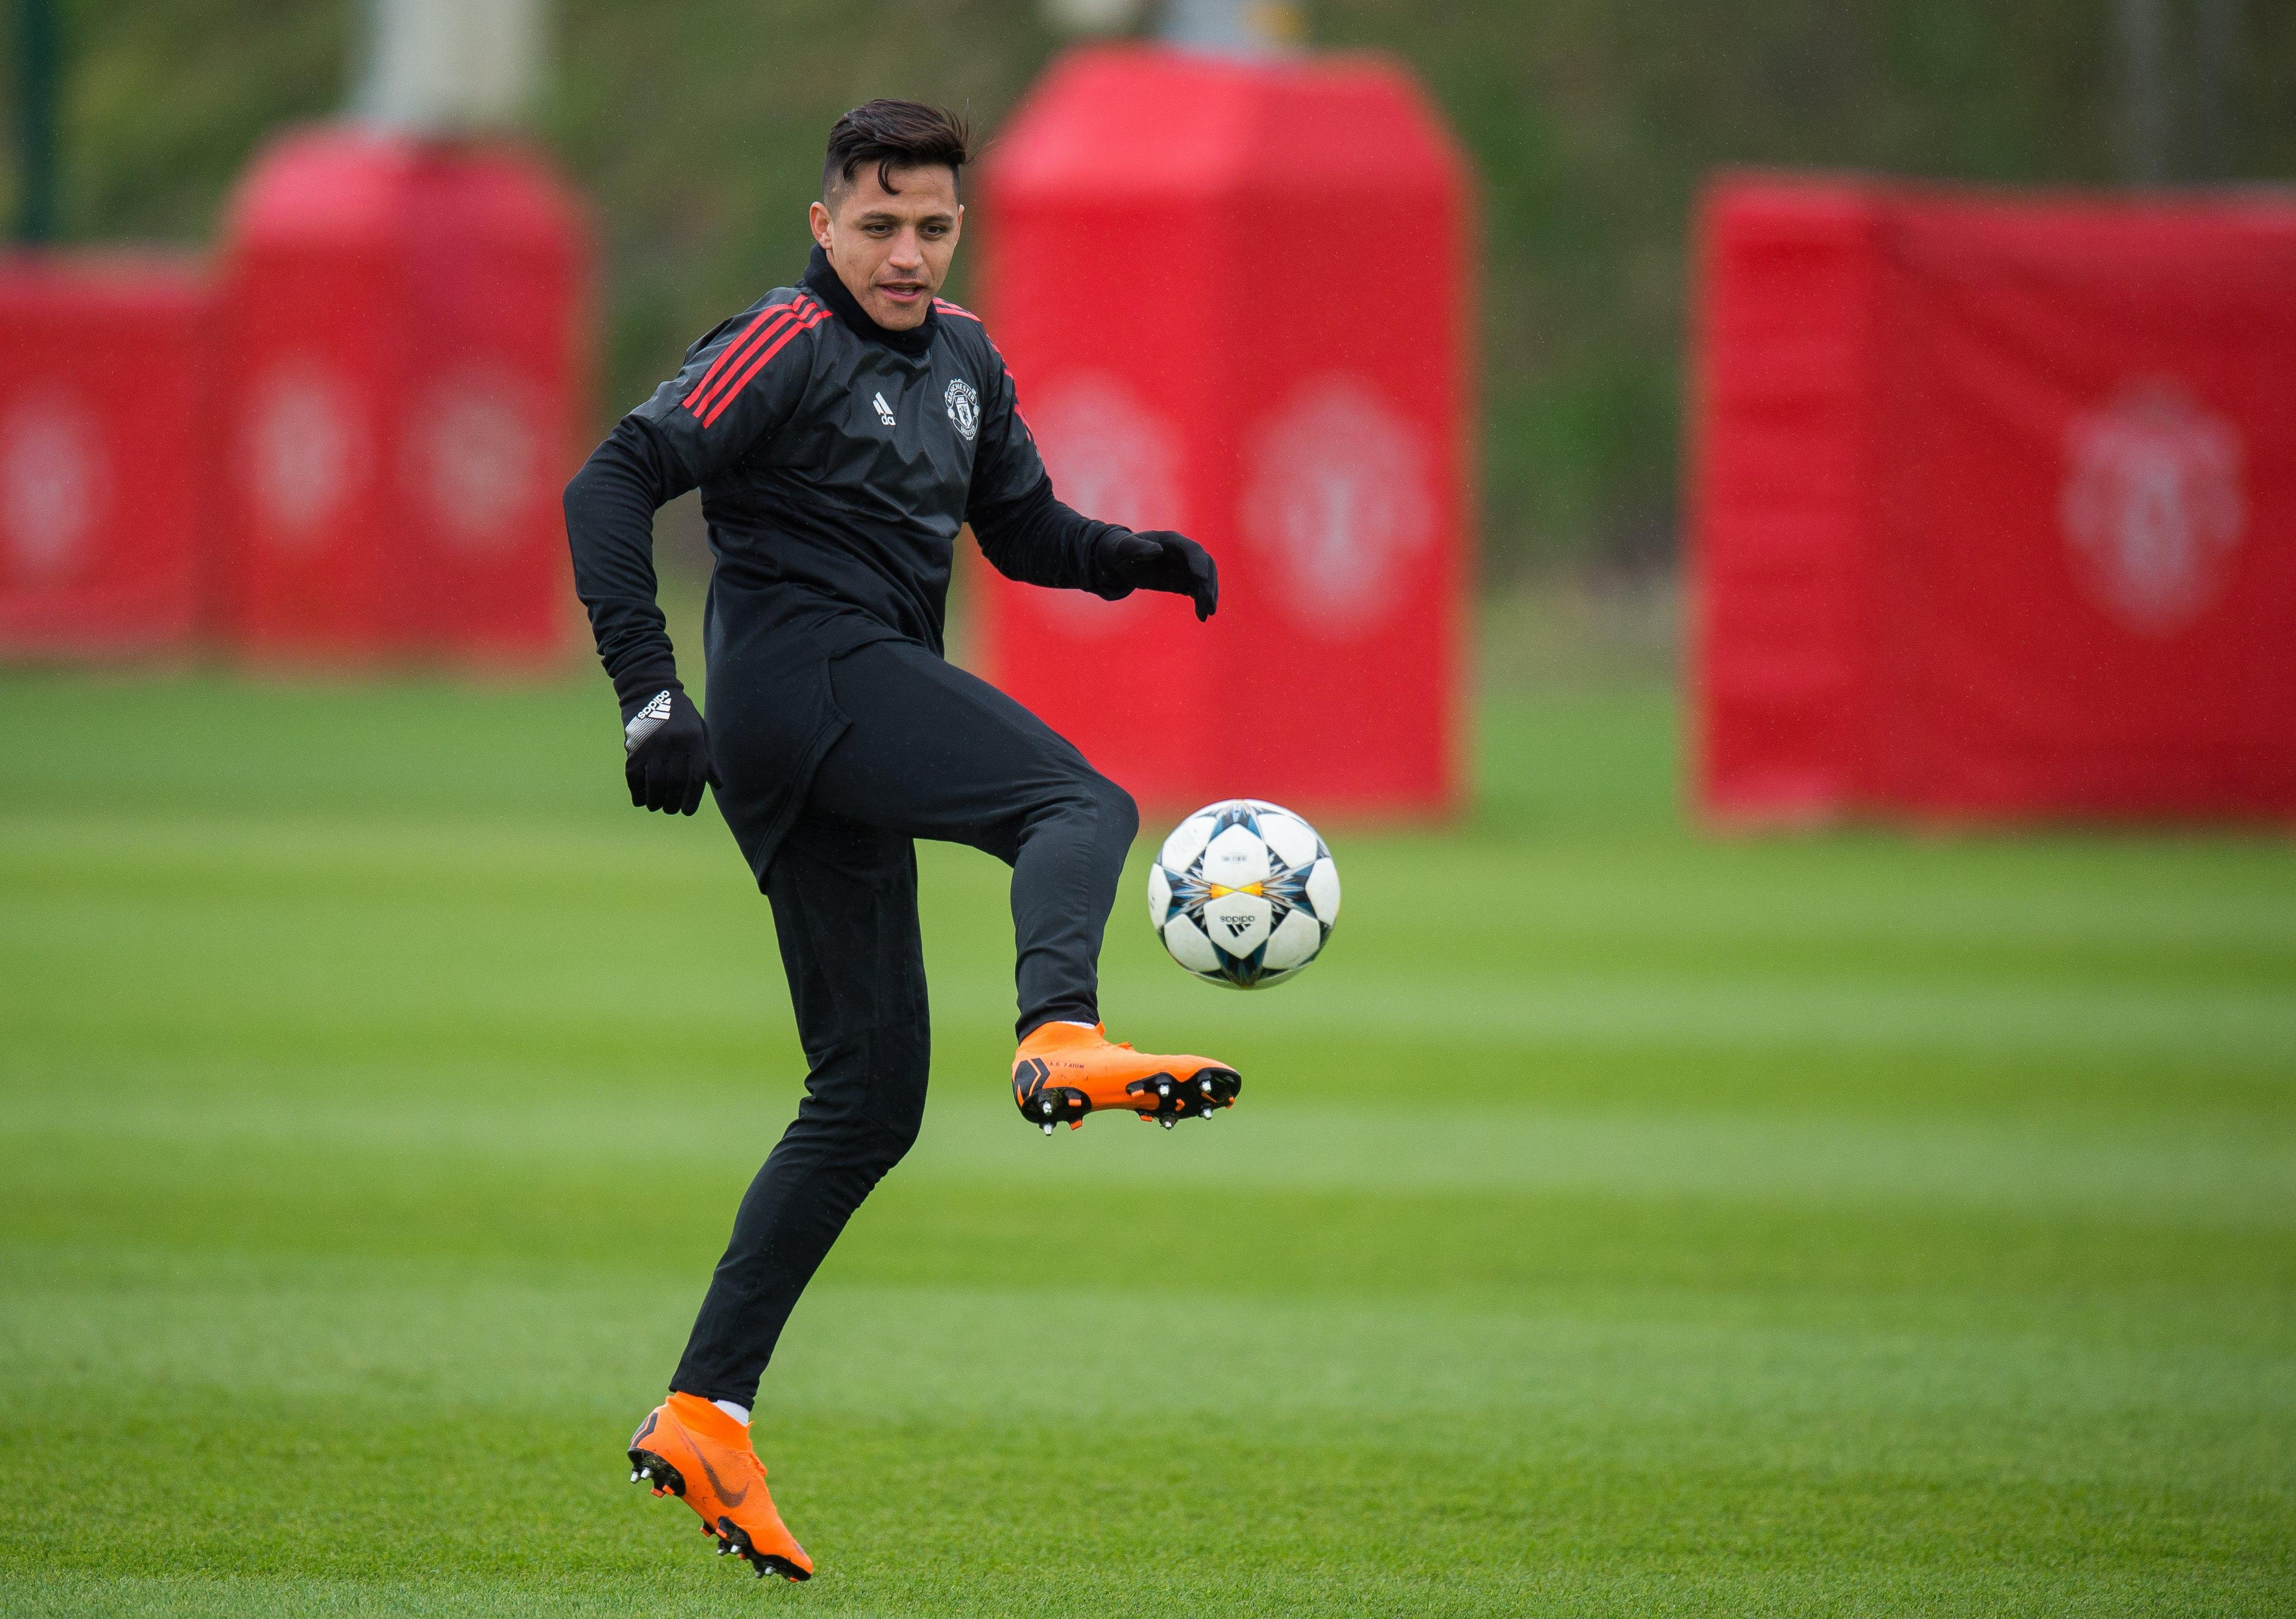 Alexis Sanchez had been training alone at Carrington due to visa issues